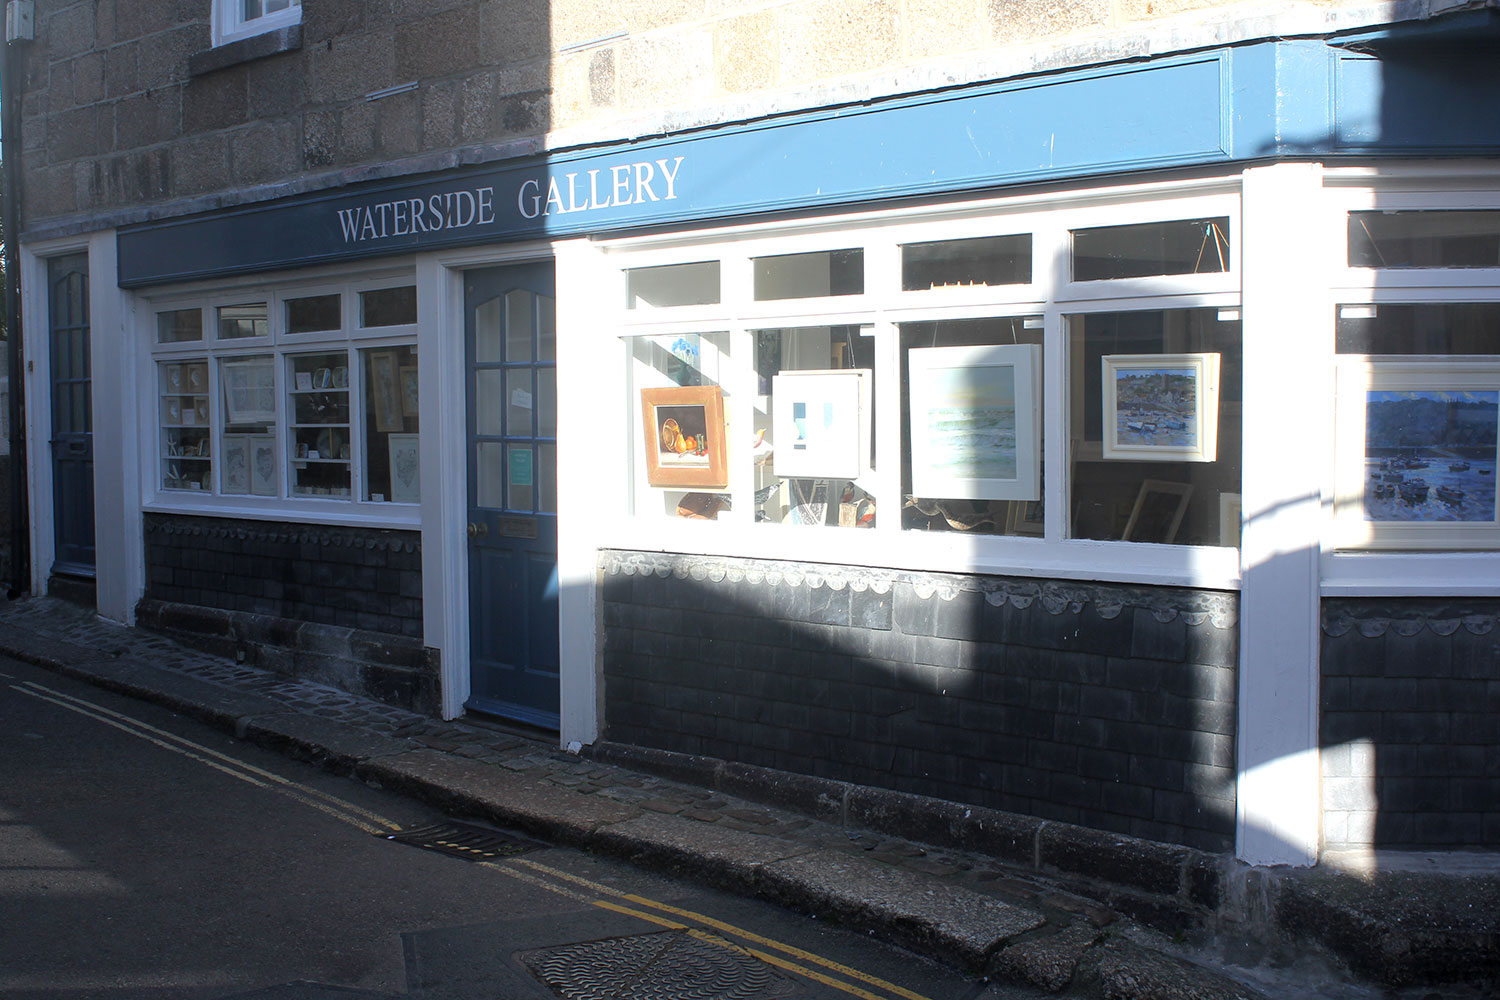 Waterside Gallery